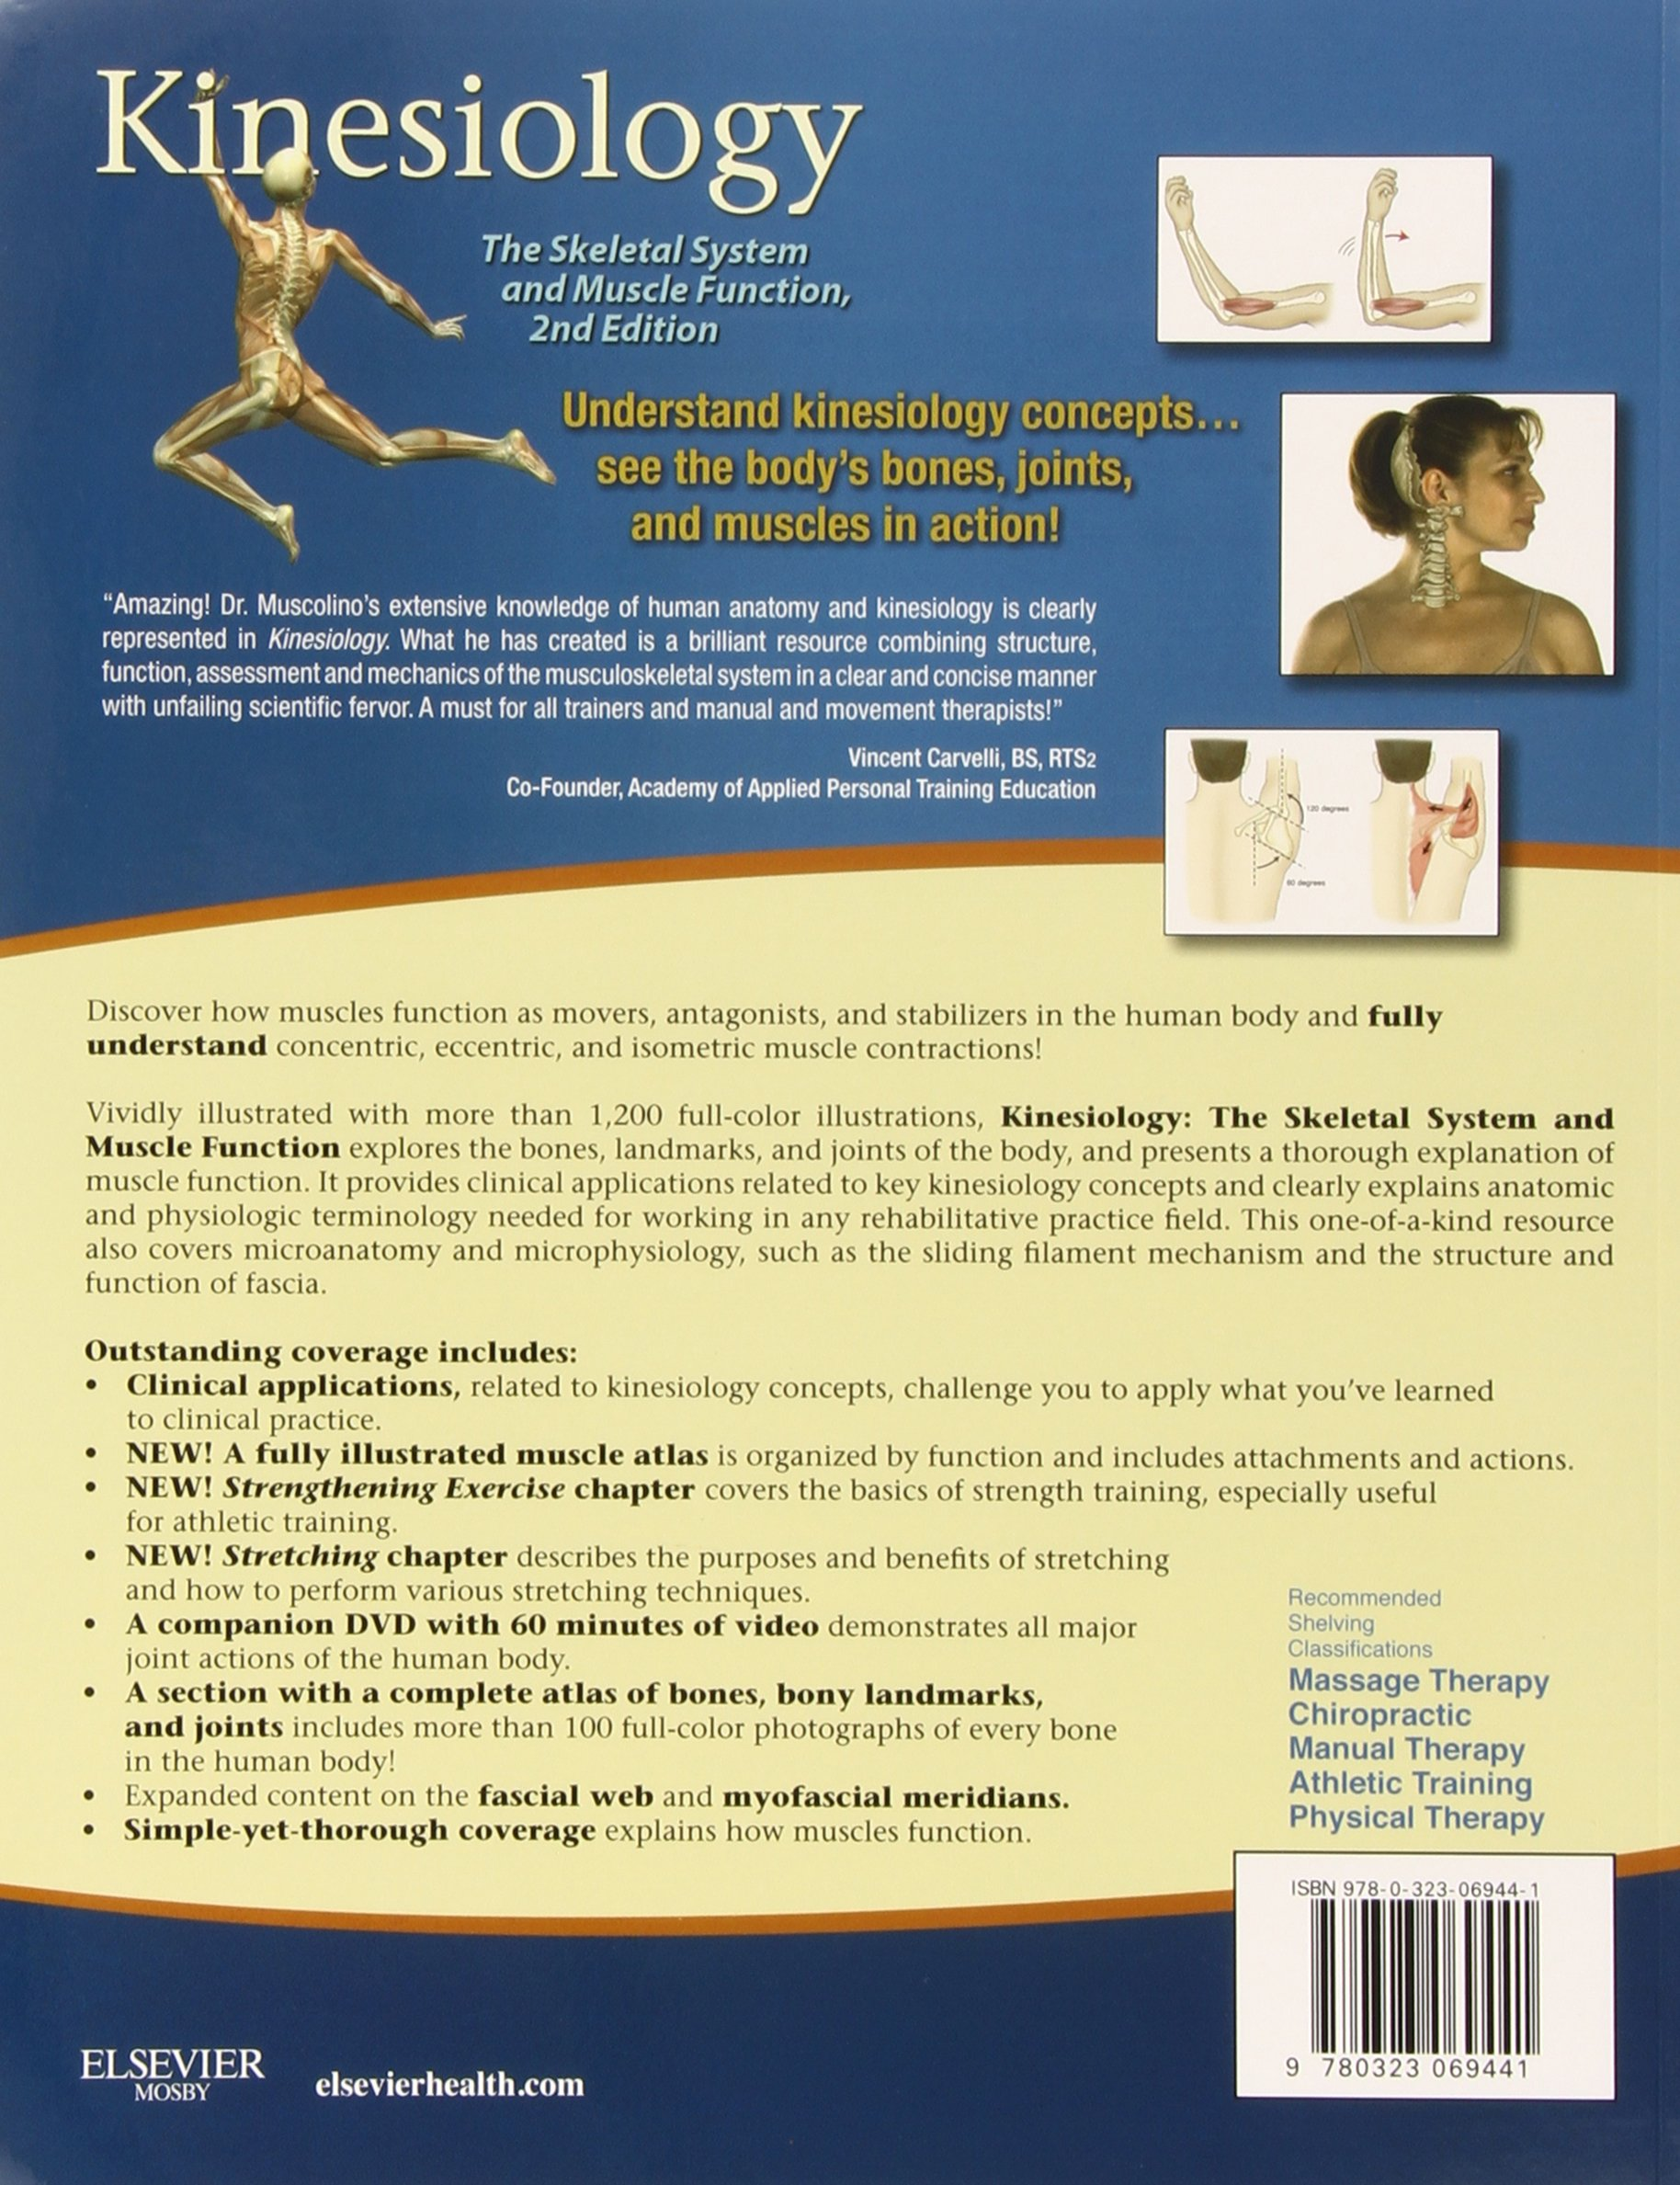 Kinesiology: The Skeletal System and Muscle Function, 2e: Amazon.co.uk:  Joseph E. Muscolino DC: 9780323069441: Books